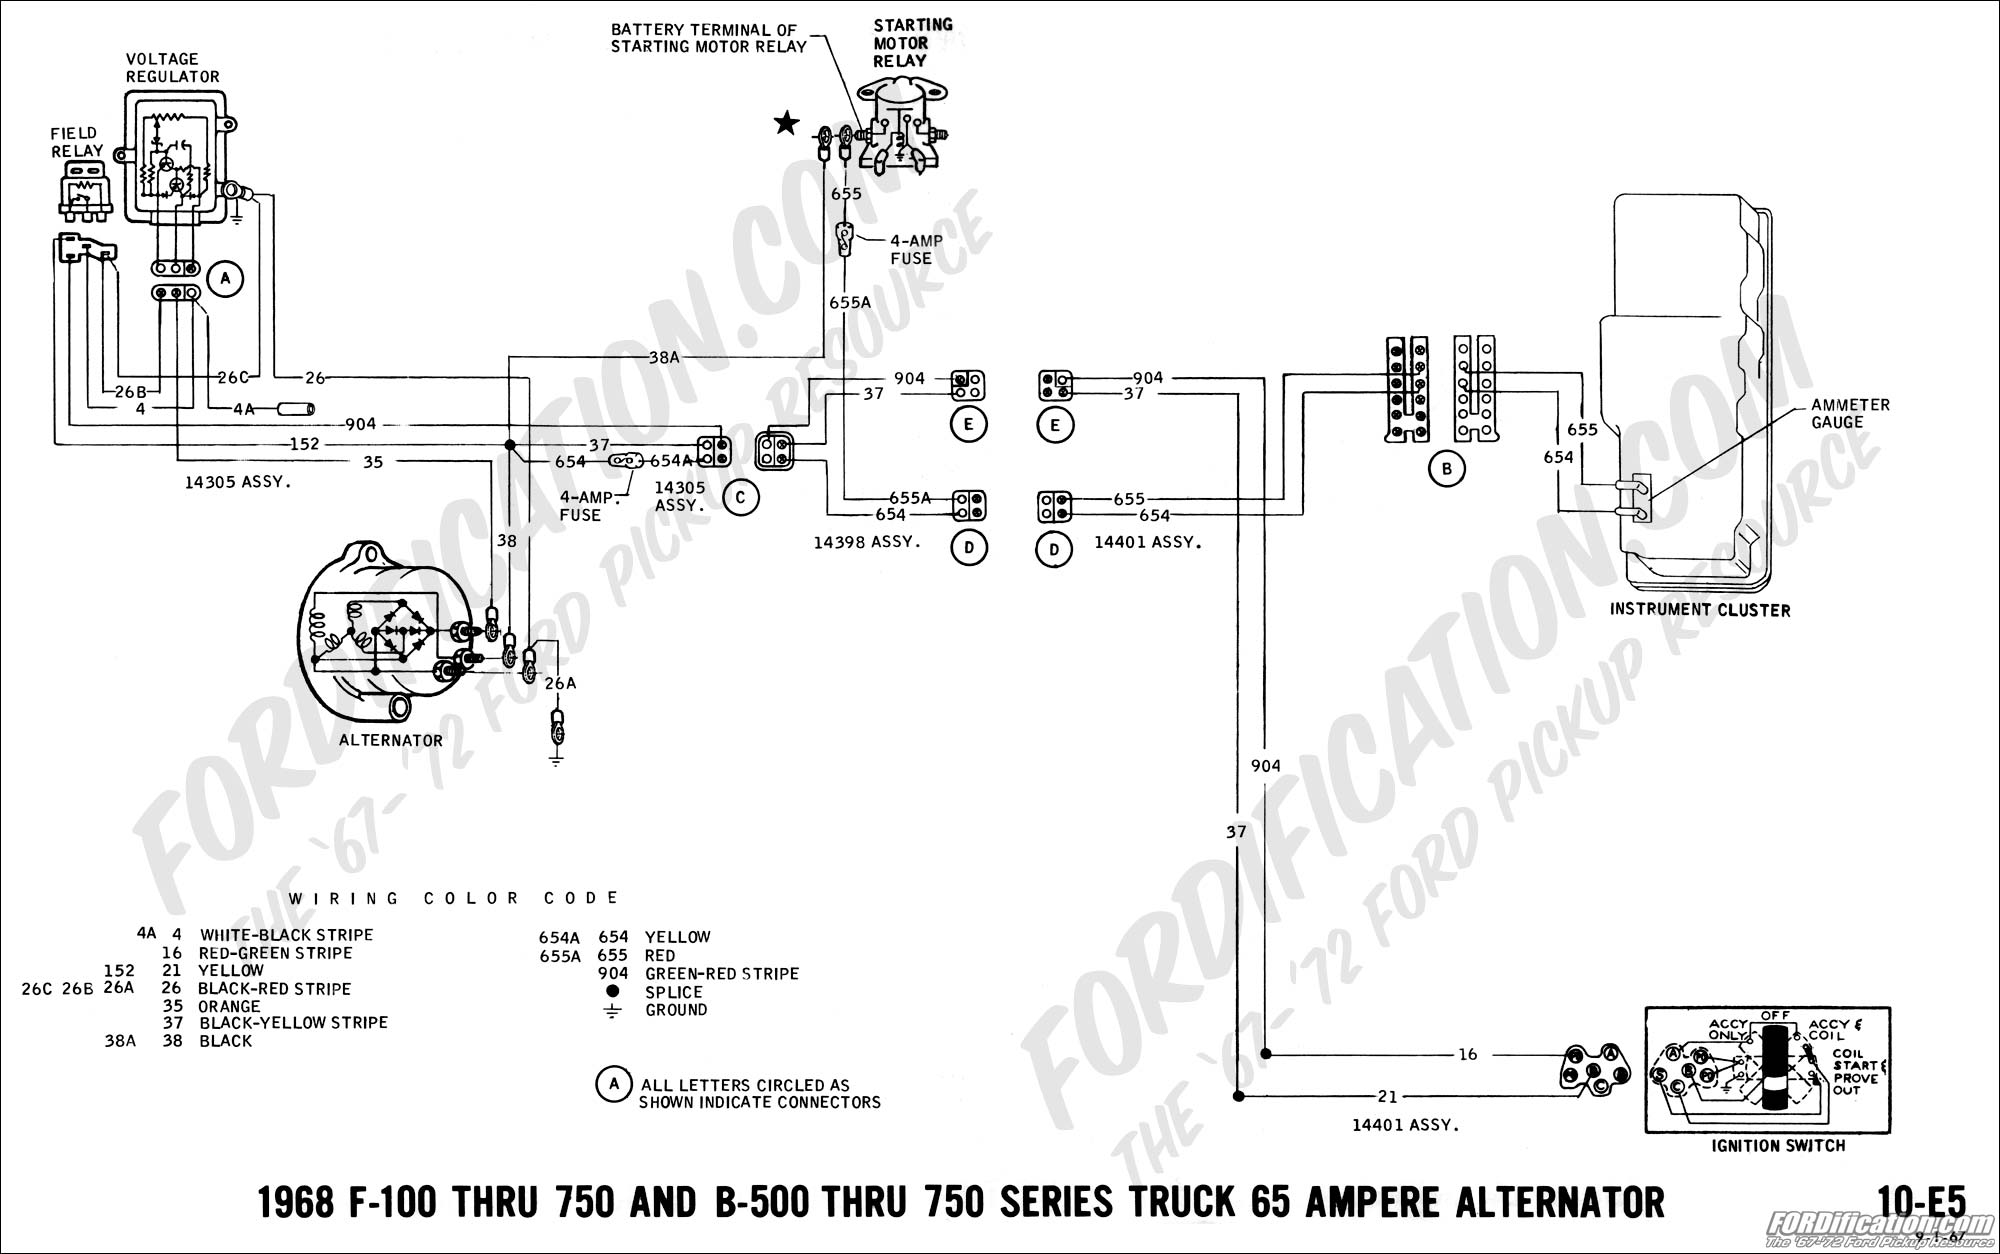 70 ford alternator wiring diagram wiring diagram rh blaknwyt co 3 Wire Alternator Wiring Diagram GM Alternator Wiring Diagram